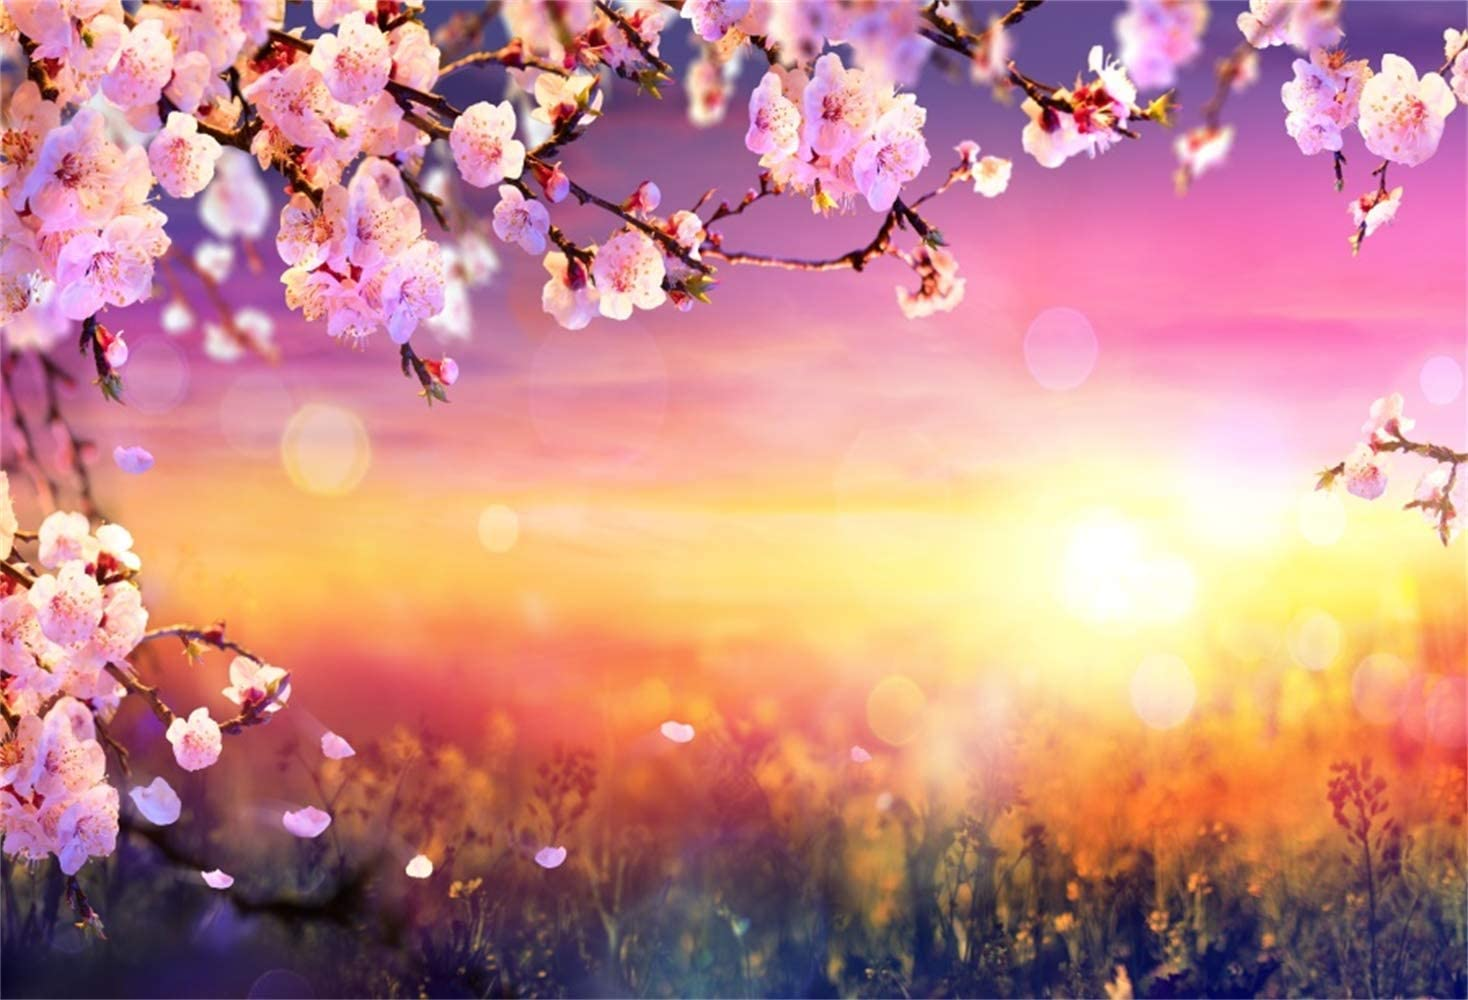 10x6.5ft Cherry Blossom Background Spring Sunset Polyester Photography Backdrop Warm Sunshine Pink Flowers Newlywed Romantic Wedding Photo Studio Greeting Card Personal Portraits Shoot